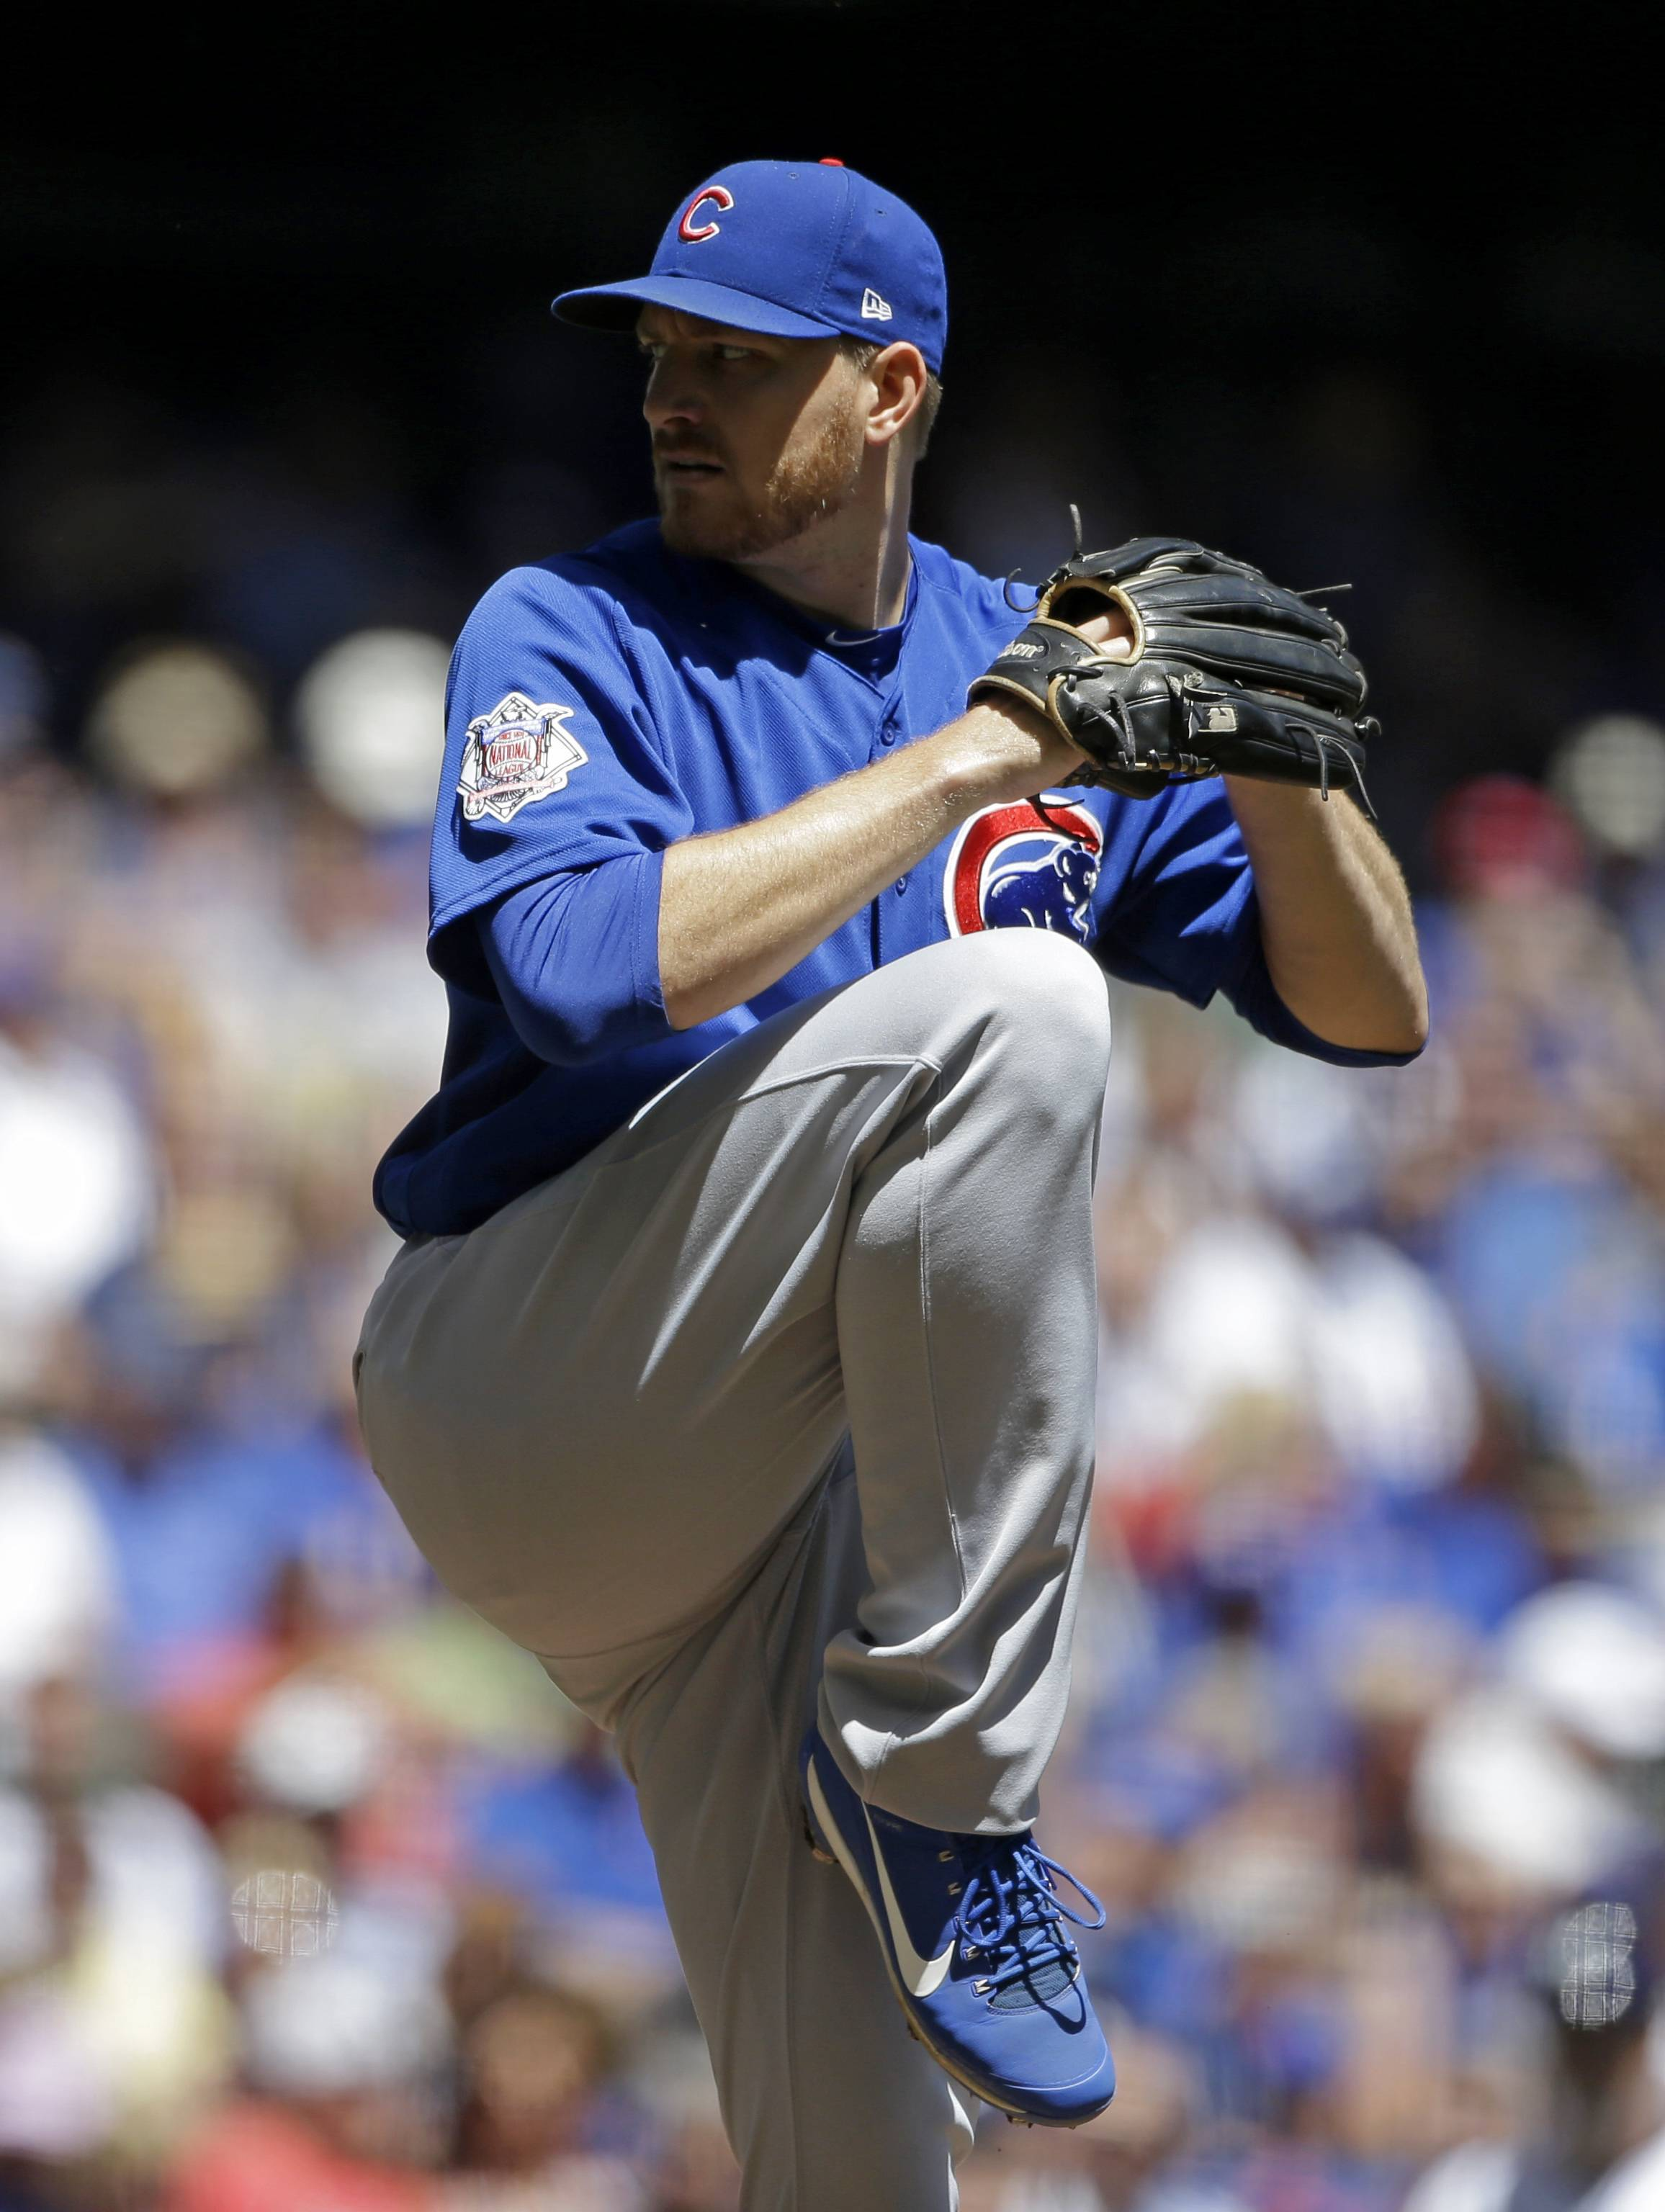 Montgomery sharp again, but Chicago Cubs shut out by Brewers